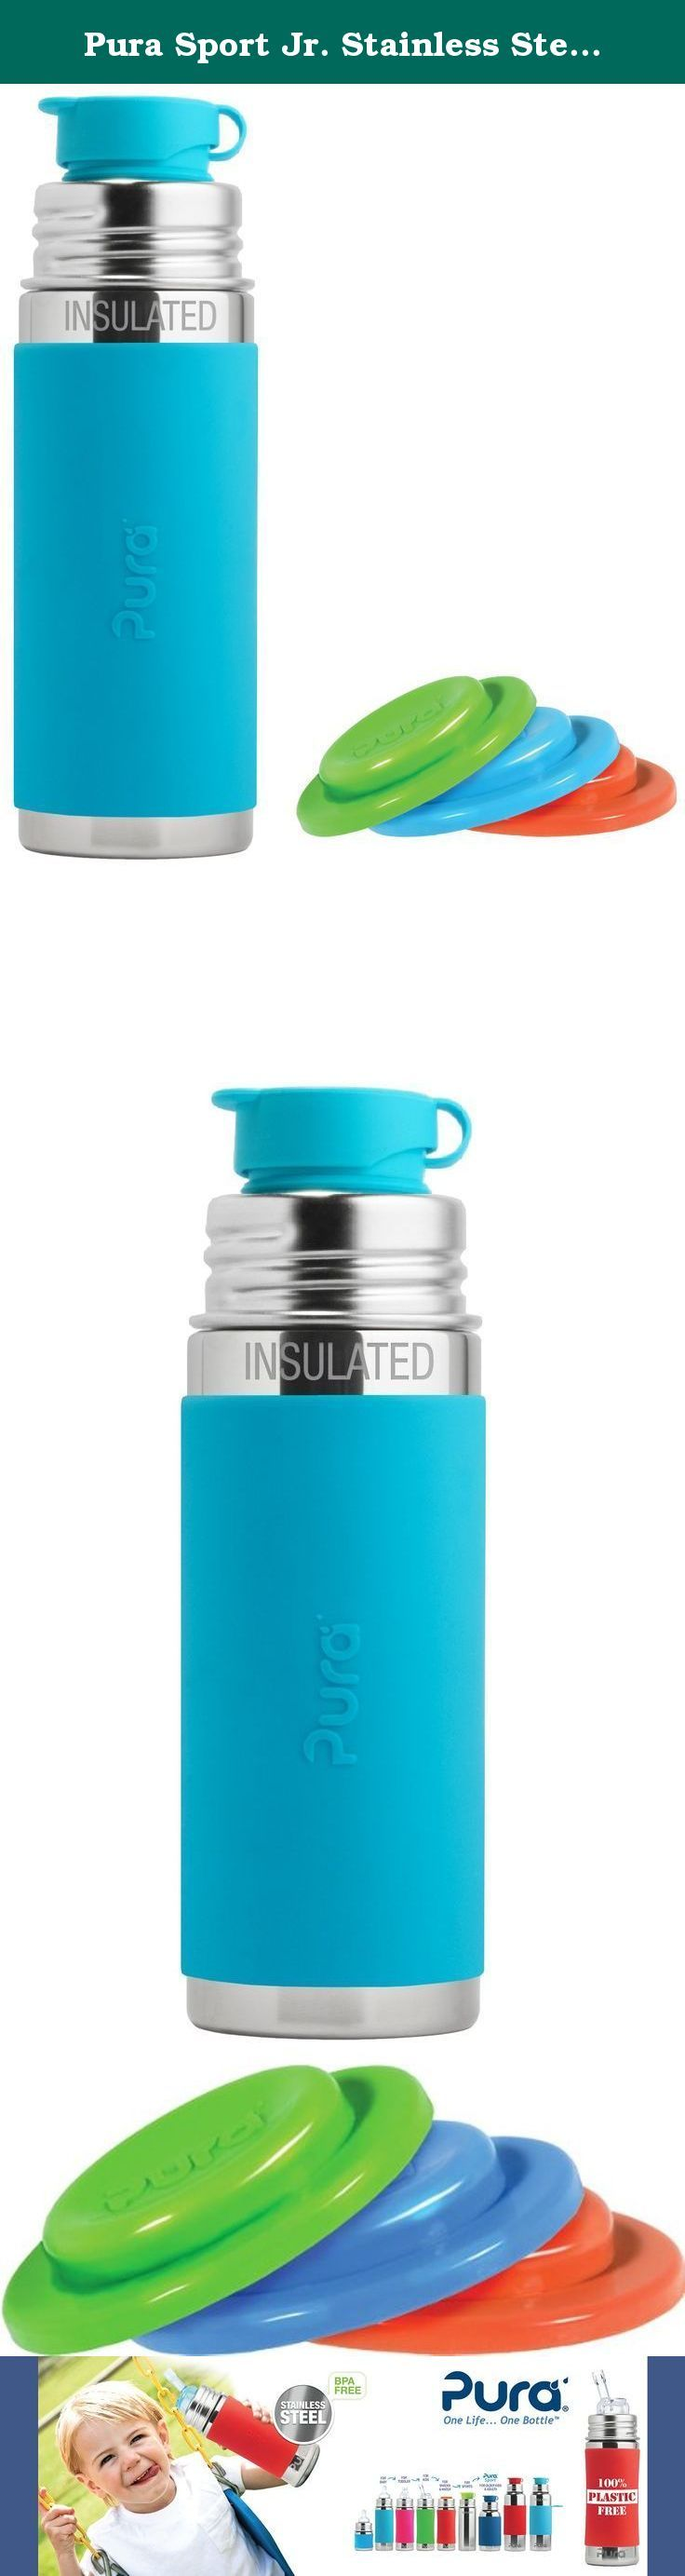 Pura Sport Jr. Stainless Steel 9 Ounce Vacuum Insulated Bottle - Aqua - Plus Set of 3 Sealing Disks. Our development team took up the challenge of creating the first (and only) 100% plastic-free sport bottles in the world. Like all bottles in the Pura Sport collection, the Pura INSULATED Jr Sport Bottle features a double-wall vacuum insulated Food Grade Stainless Steel bottle (18/8), Medical Grade Silicone components, and zero plastic parts! Each bottle features our patented, medical…